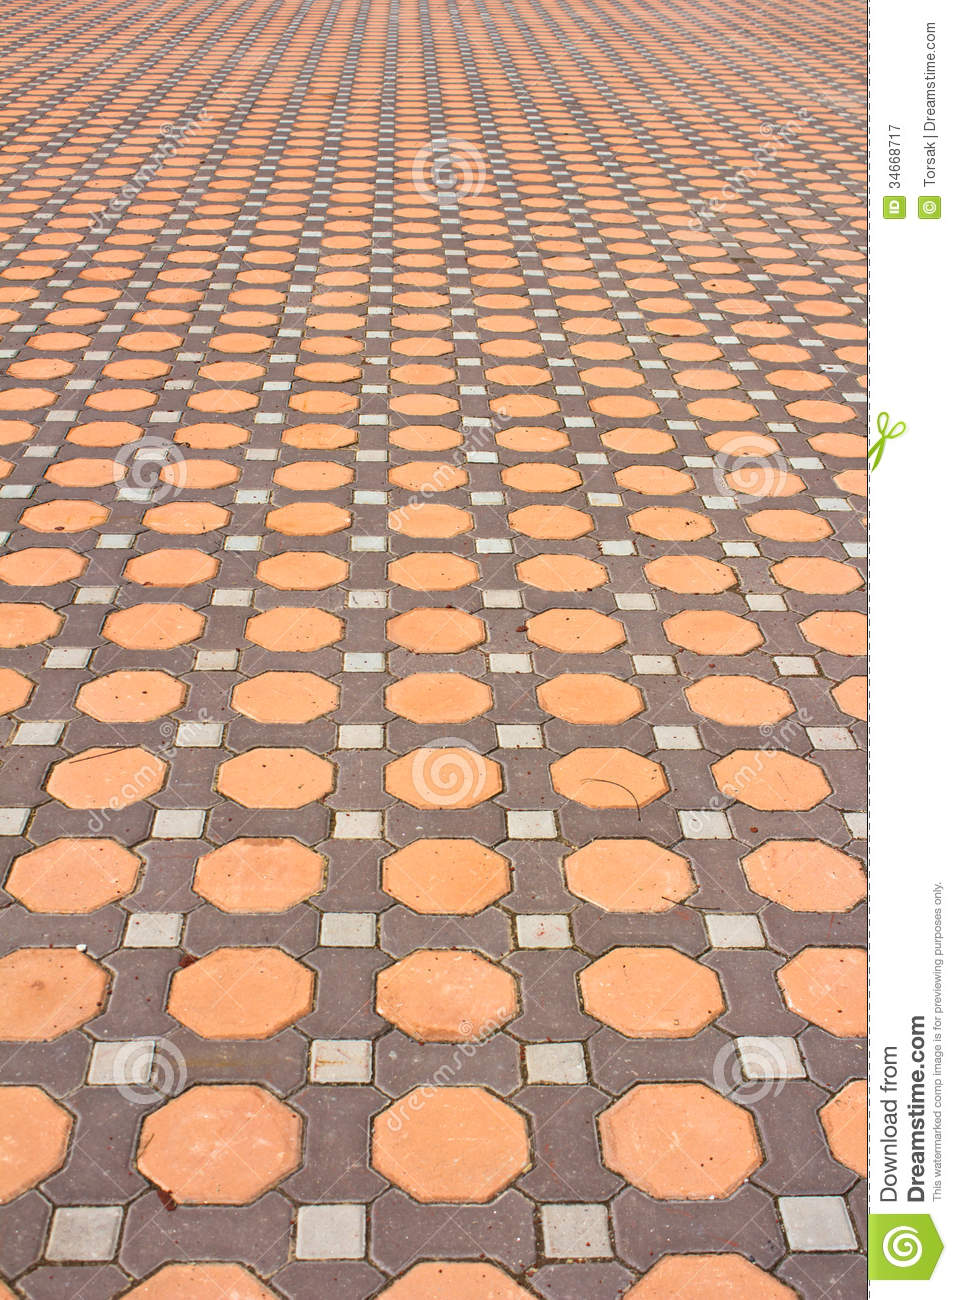 Details Of Design Stone Floor Tiles Stock Image Image Of